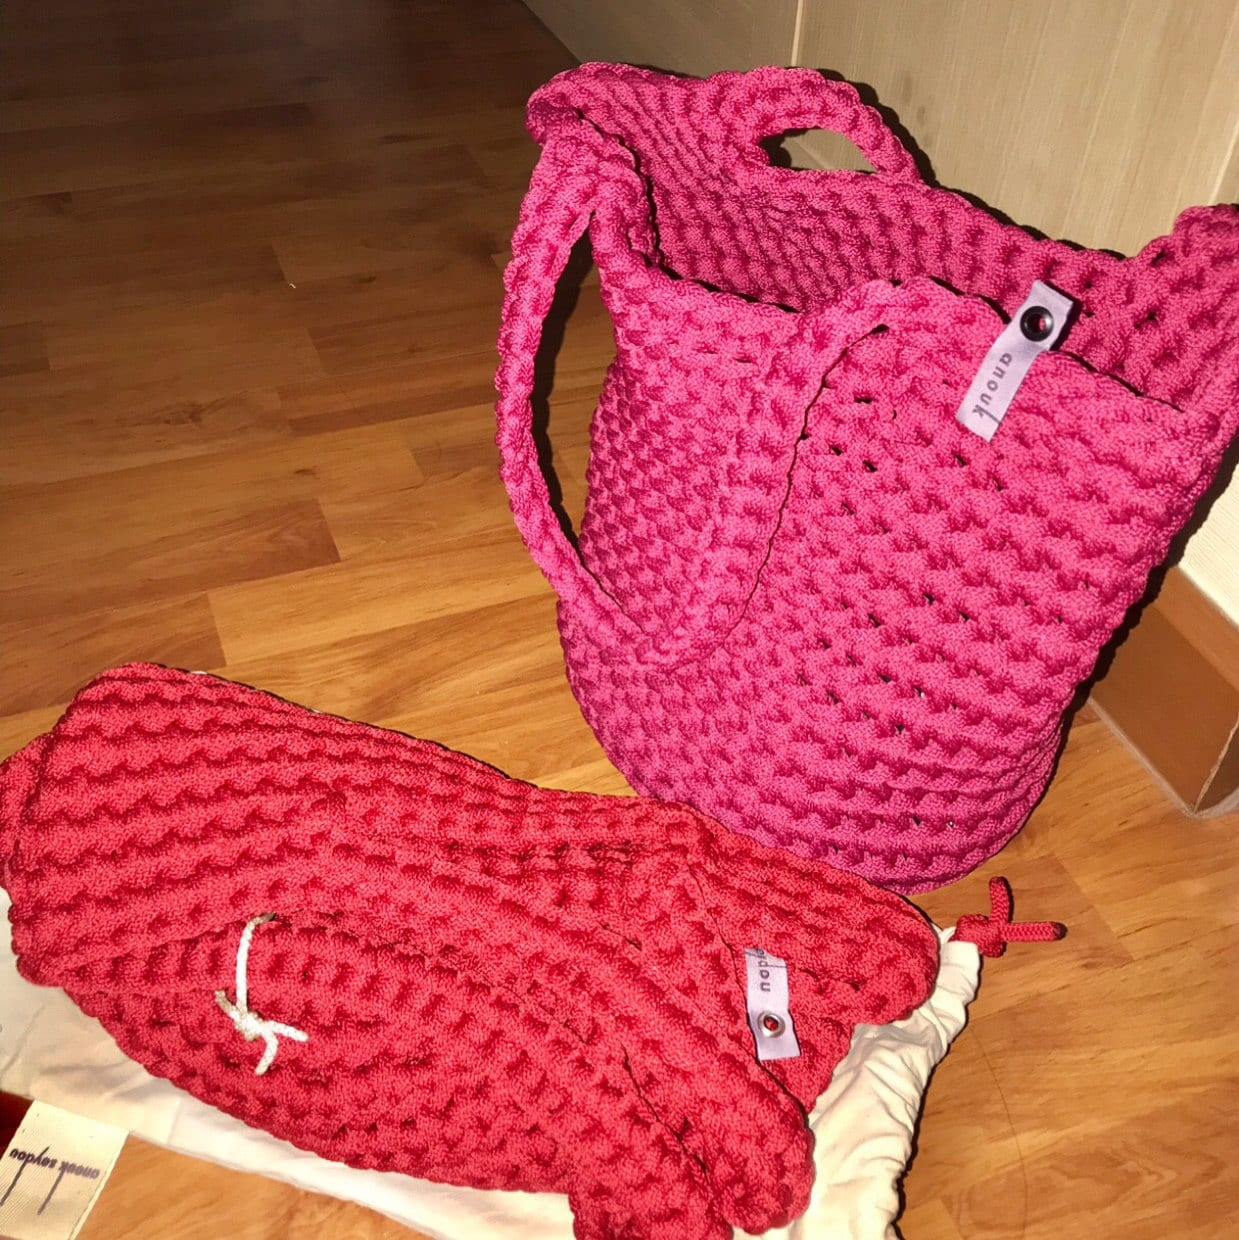 Chanida bangkasem added a photo of their purchase